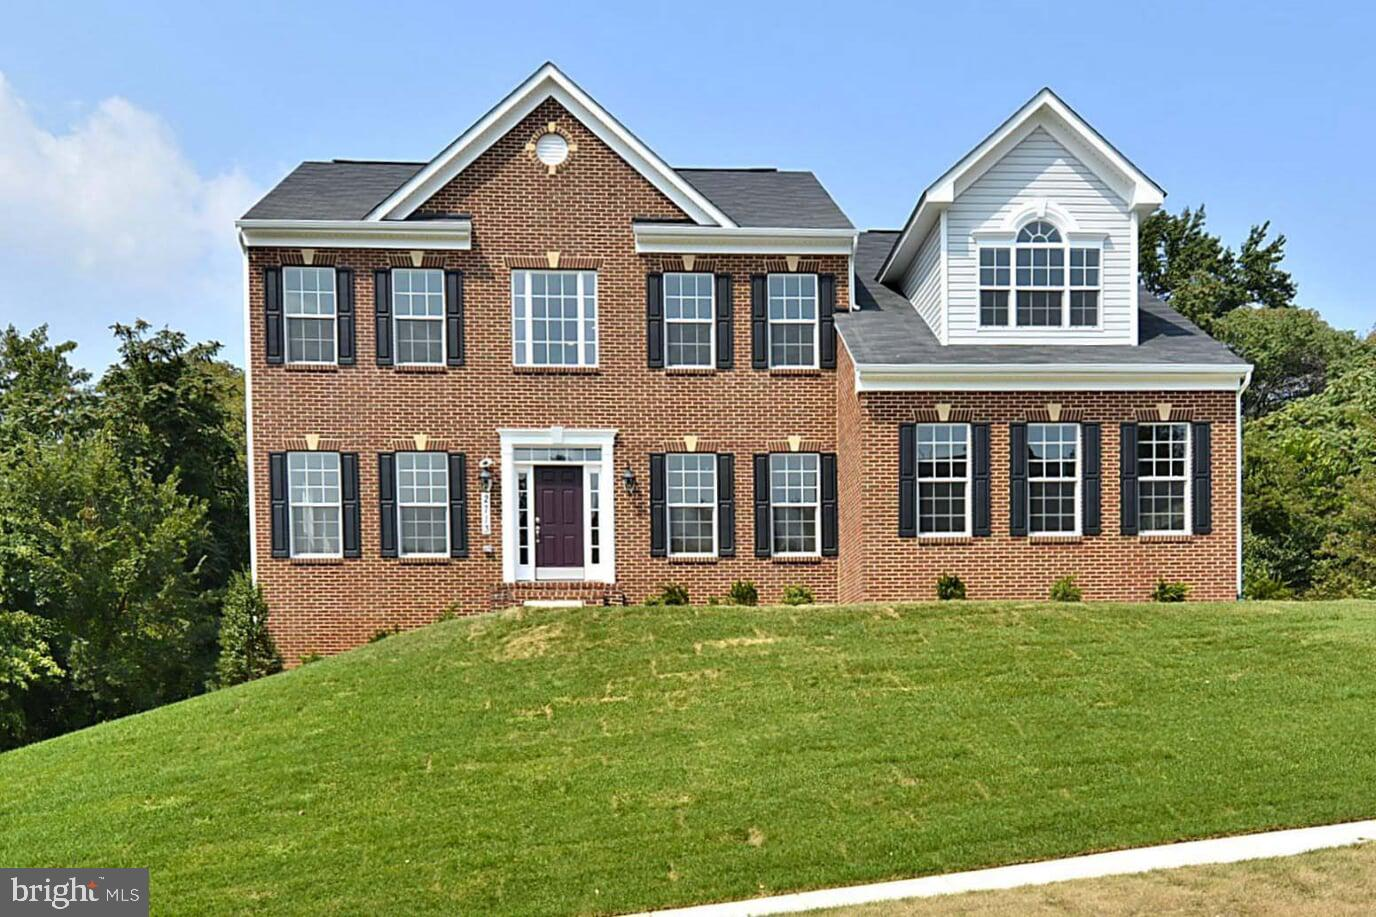 299 MEADOWCROFT LANE, LUTHERVILLE TIMONIUM, MD 21093